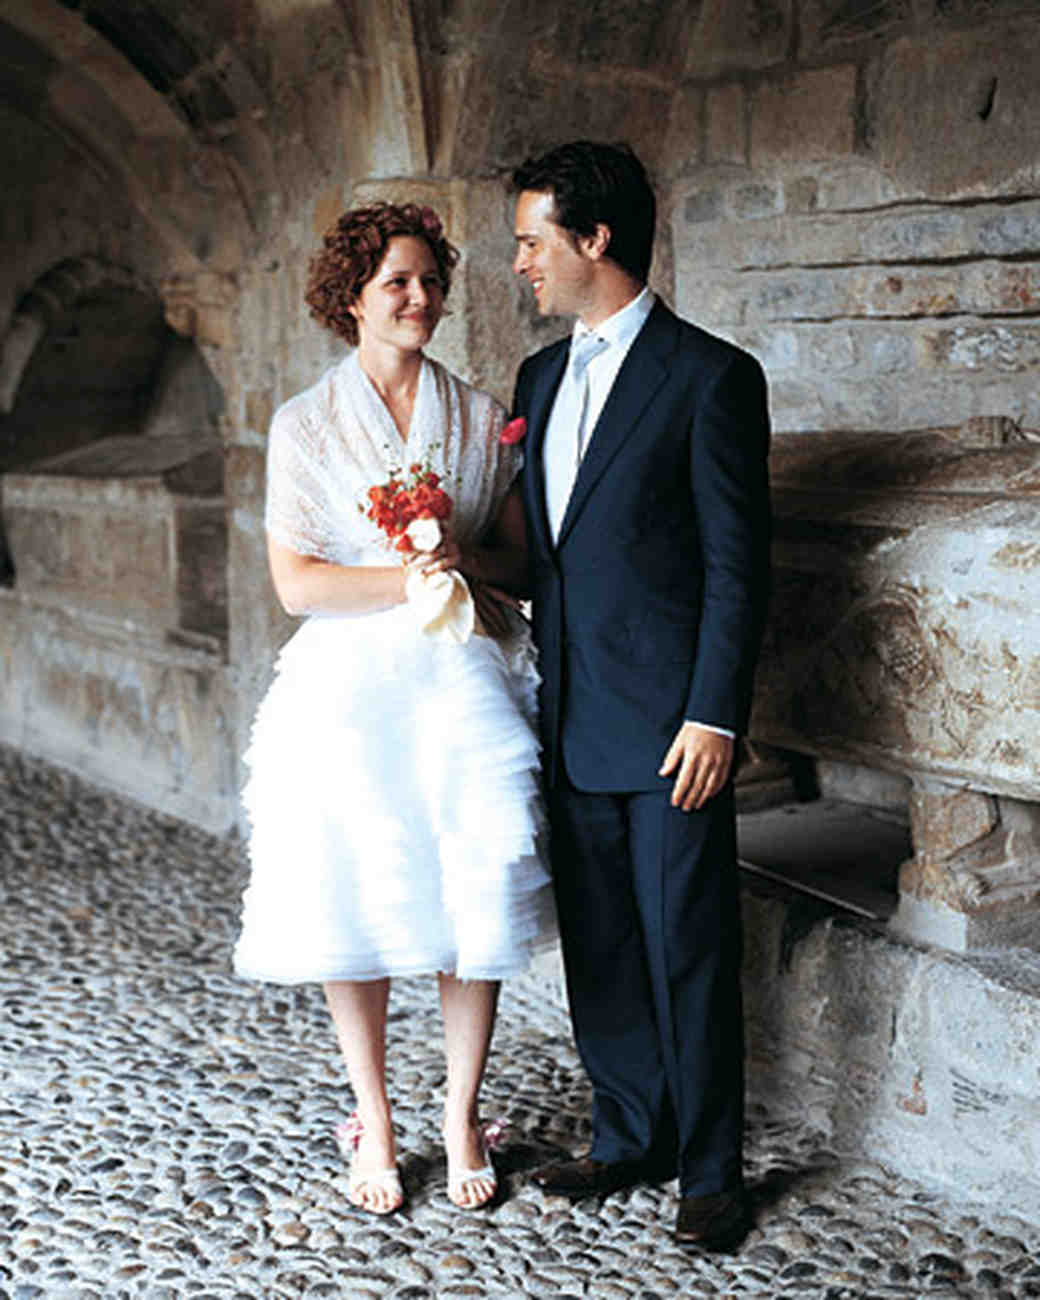 A Vibrant, Whimsical, and Casual Destination Wedding in France